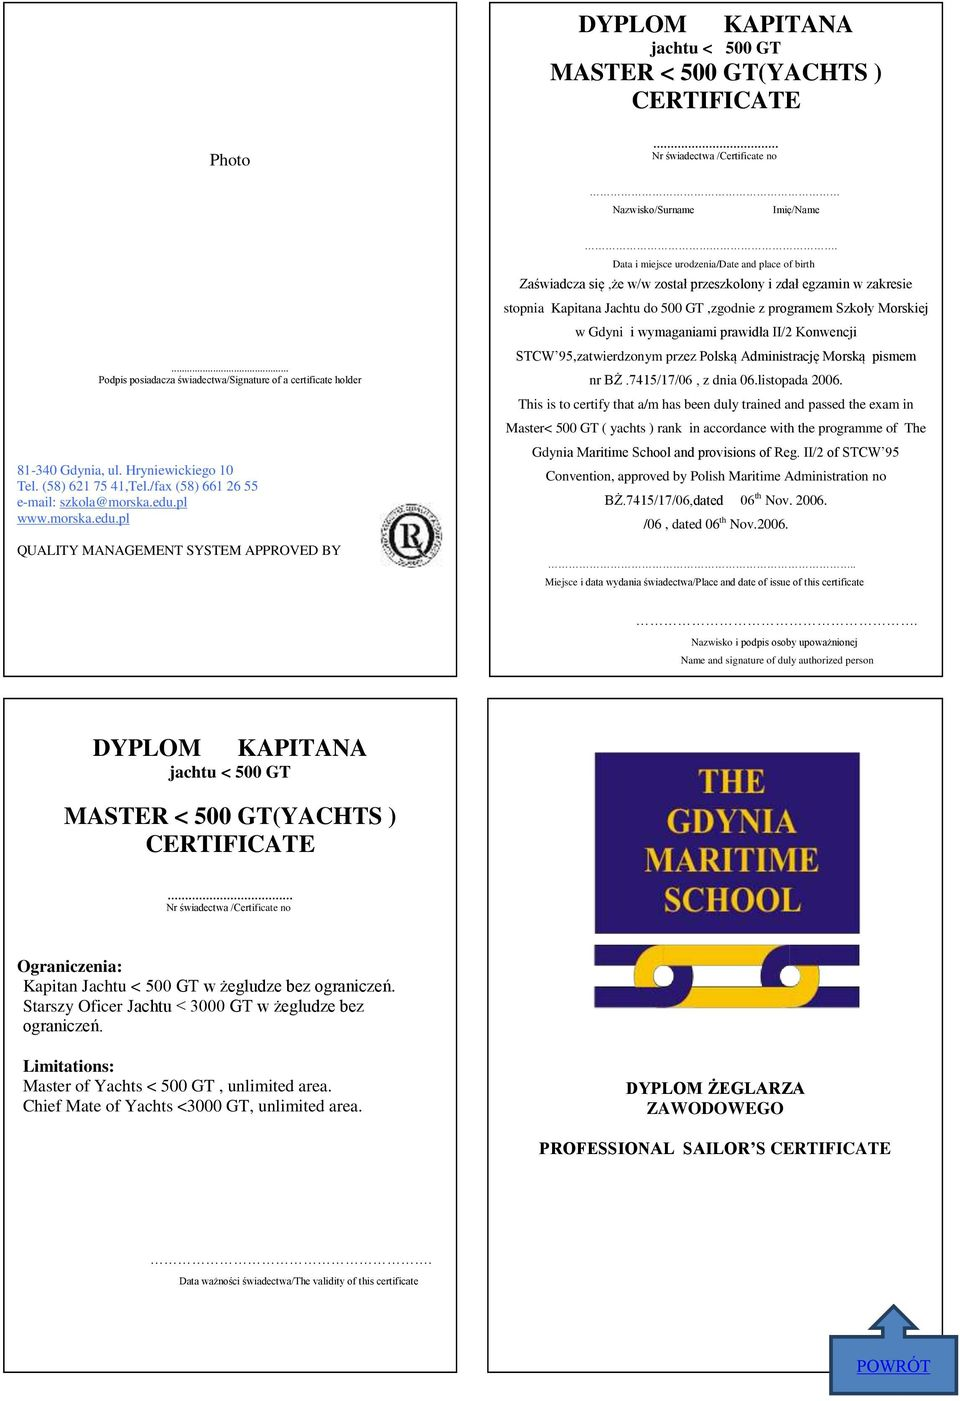 Master< 500 GT ( yachts ) rank in accordance with the programme of The Gdynia Maritime School and provisions of Reg. II/2 of STCW 95 Convention, approved by Polish Maritime Administration no BŻ.